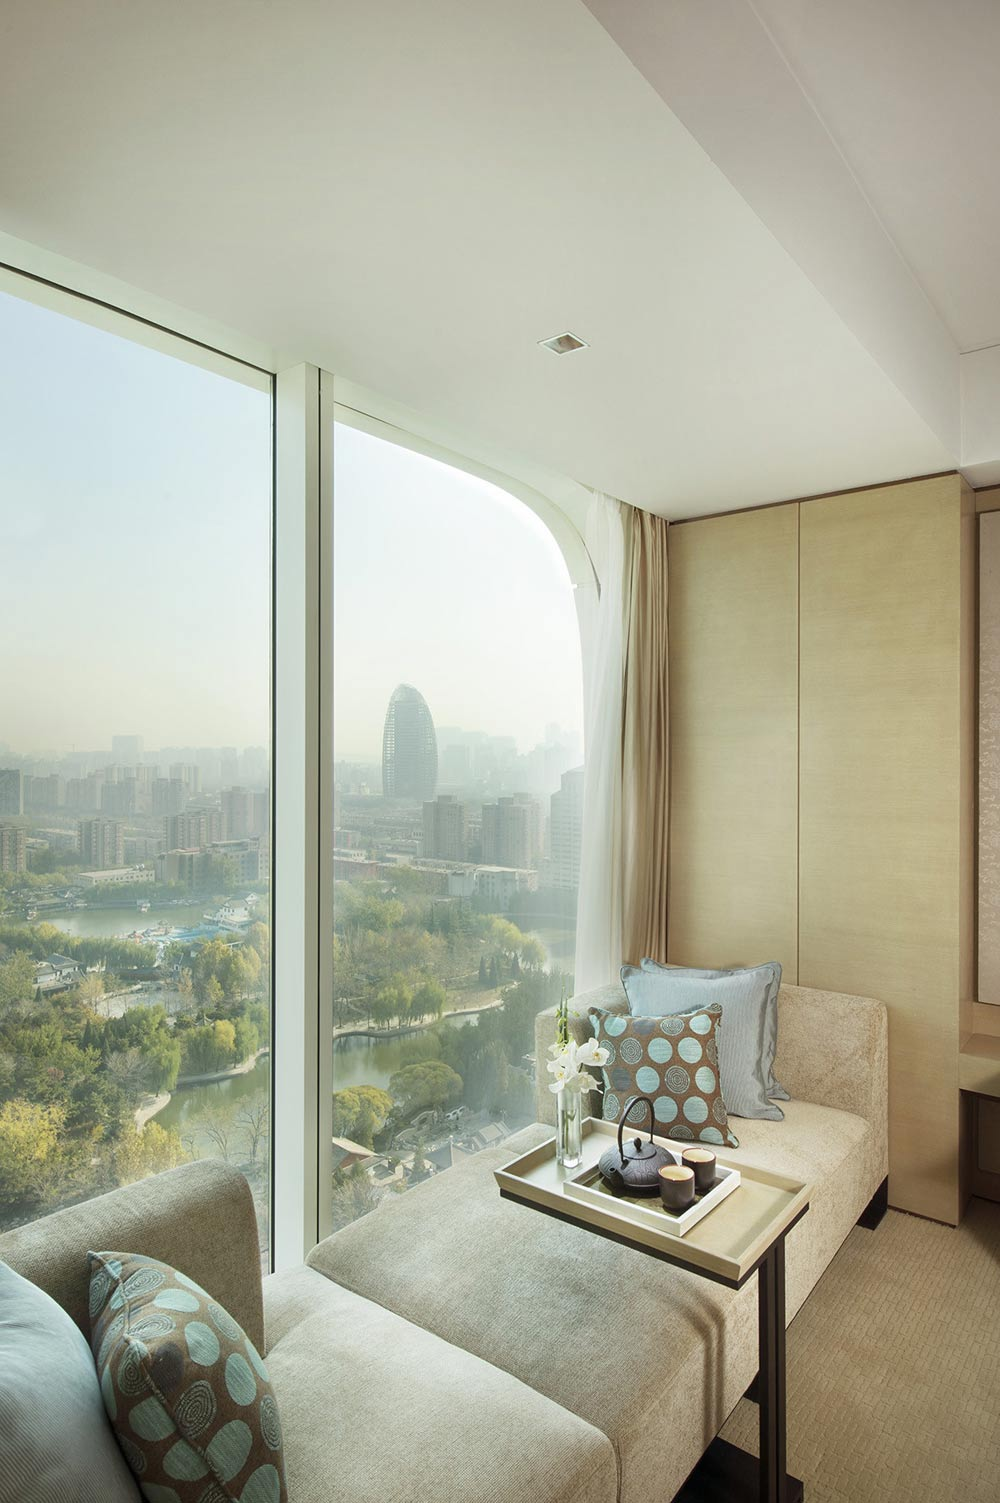 Deluxe room with a lake view at Conrad Beijing, China